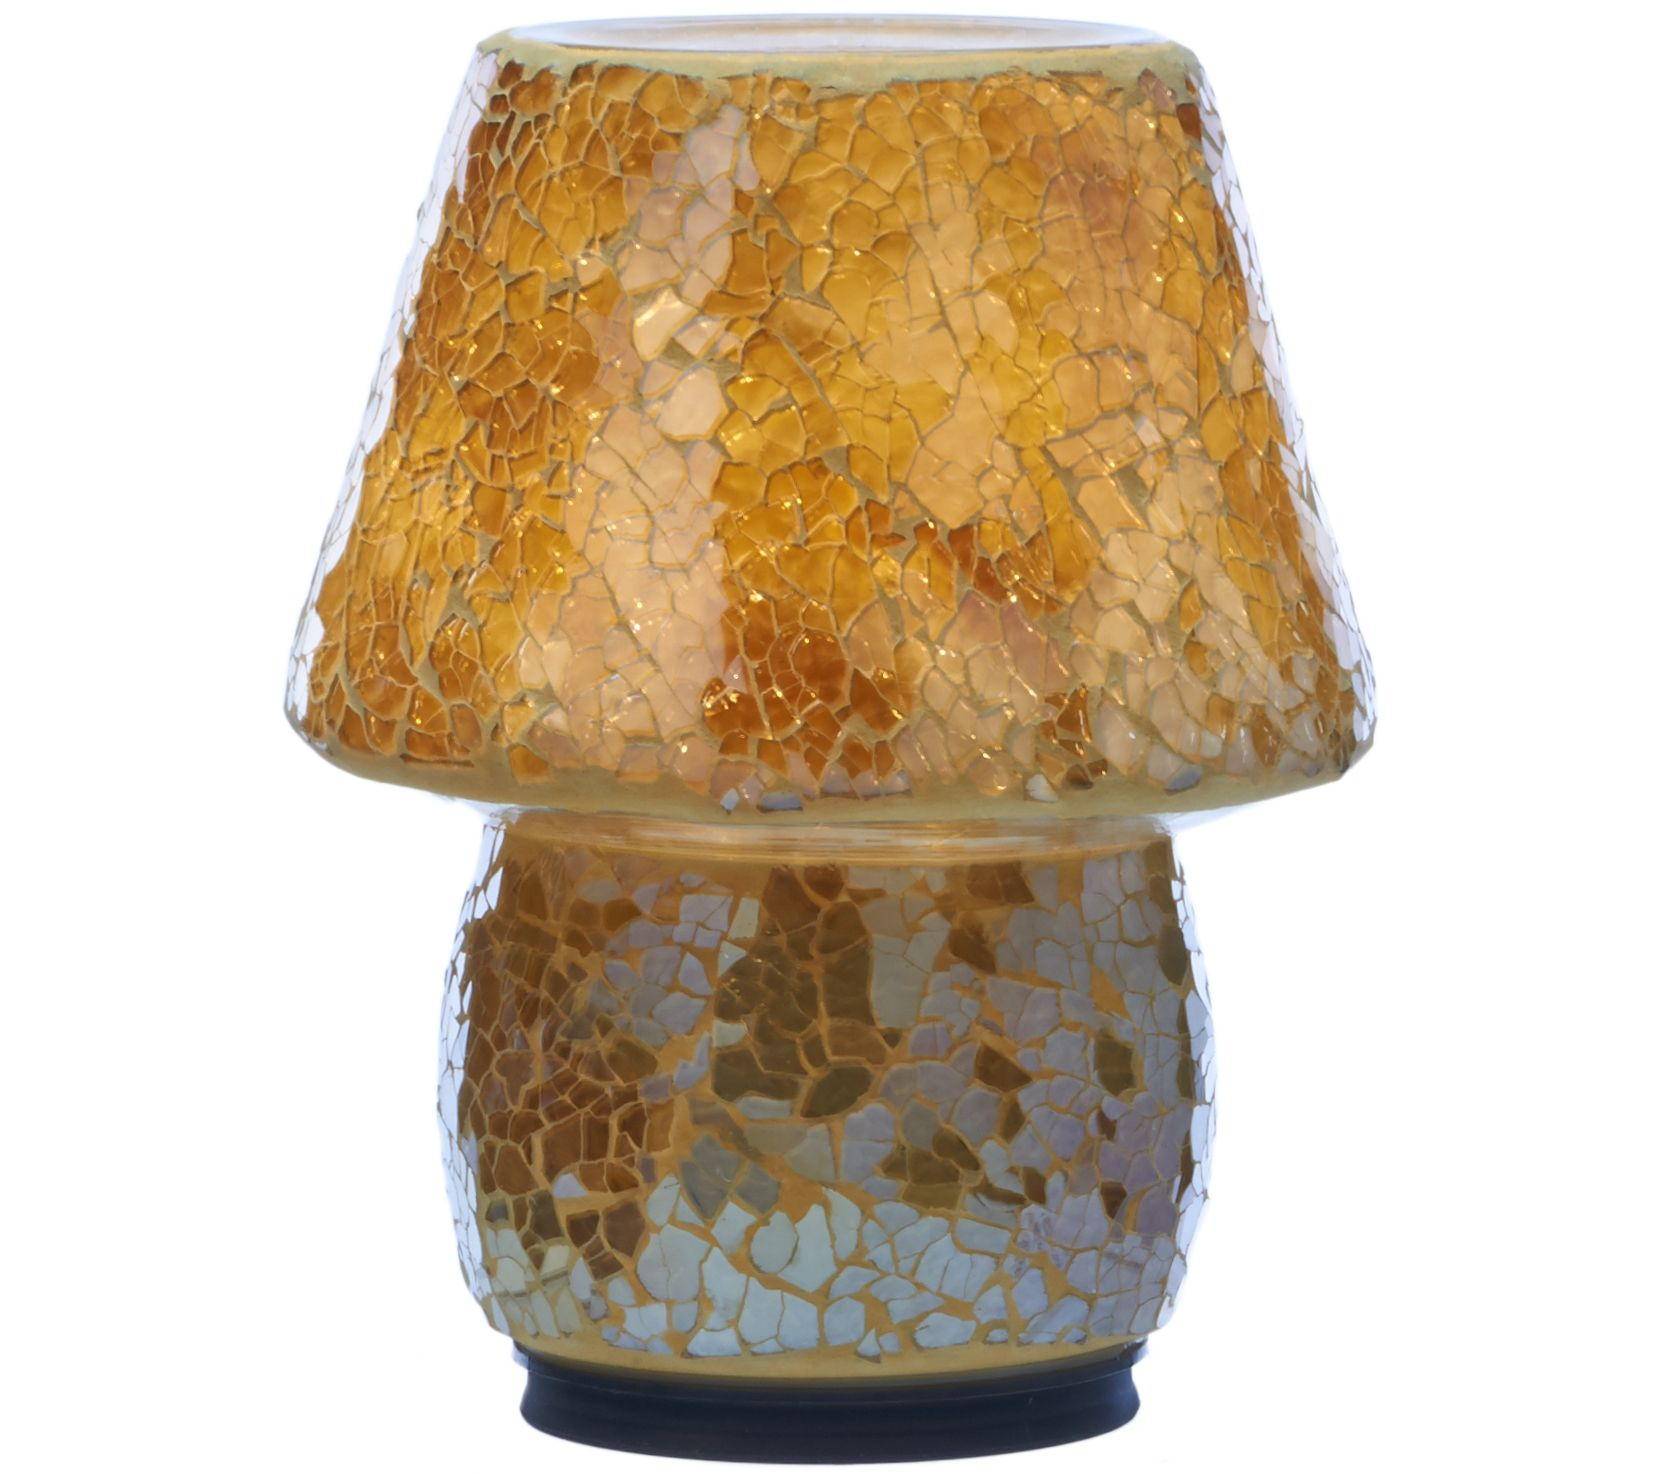 High Quality Mosaic Illuminated Indoor/Outdoor Accent Lamp By Valerie   Page 1 U2014 QVC.com